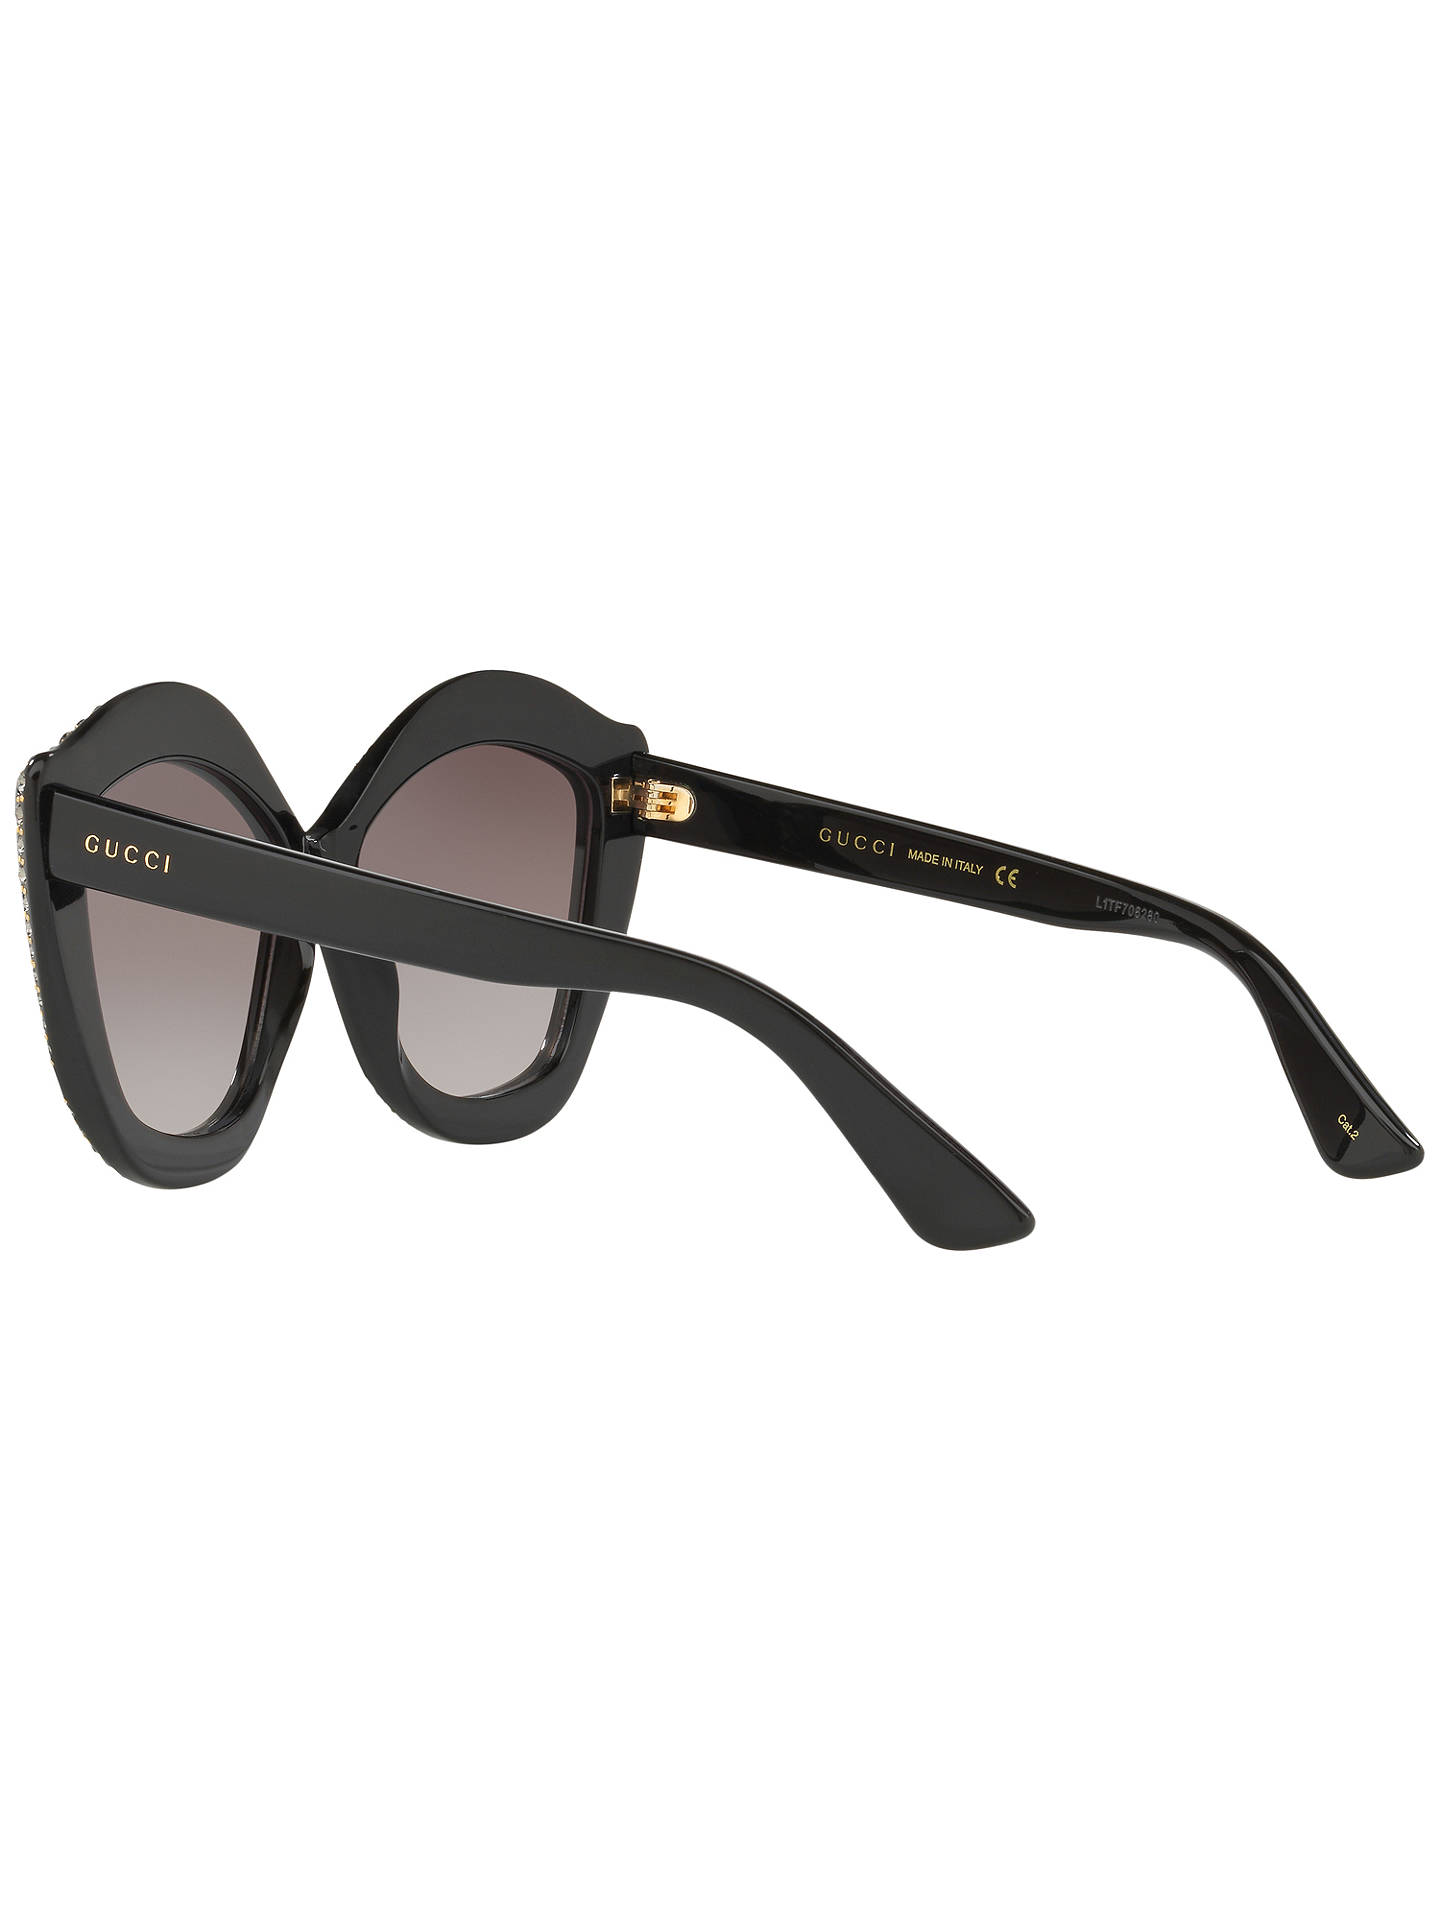 86d0cadc1 Buy Gucci GG0118S Embellished Cat's Eye Sunglasses, Black/Brown Gradient  Online at johnlewis.